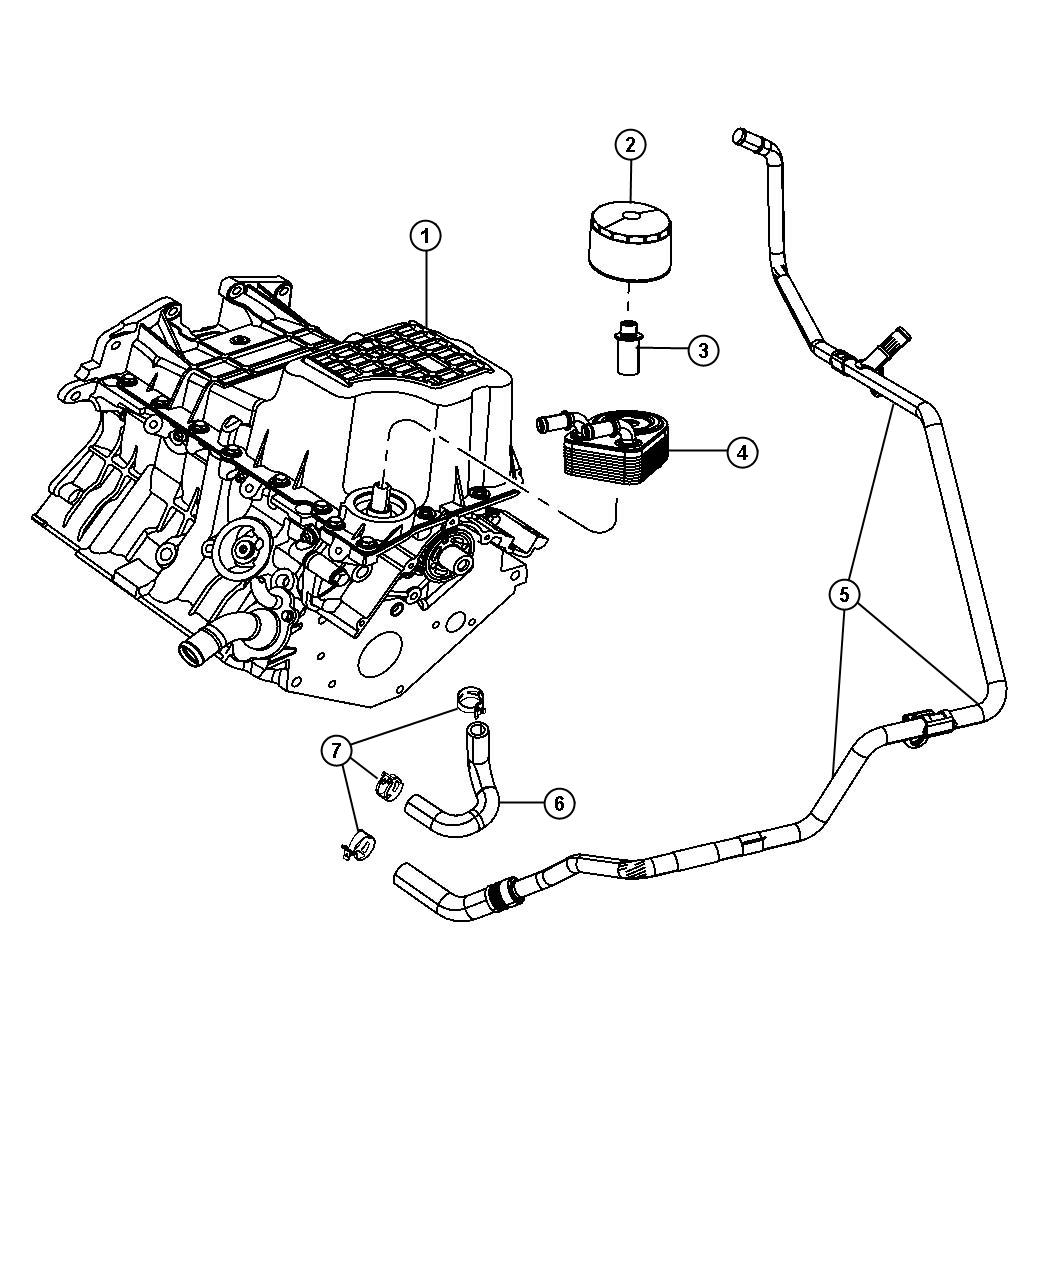 34940 Relais De Ventilateur Basse Vitesse Pour Chrysler Pt Cruiser 22l Crd 4727370aa 00BYK as well Chrysler 300m Engine Oil Filter Location also 3 8 Buick Cooling System Diagram likewise Chrysler 300 A C  pressor Location besides Chrysler 200 Ac Drain Hose Location. on 2006 chrysler town and country thermostat location